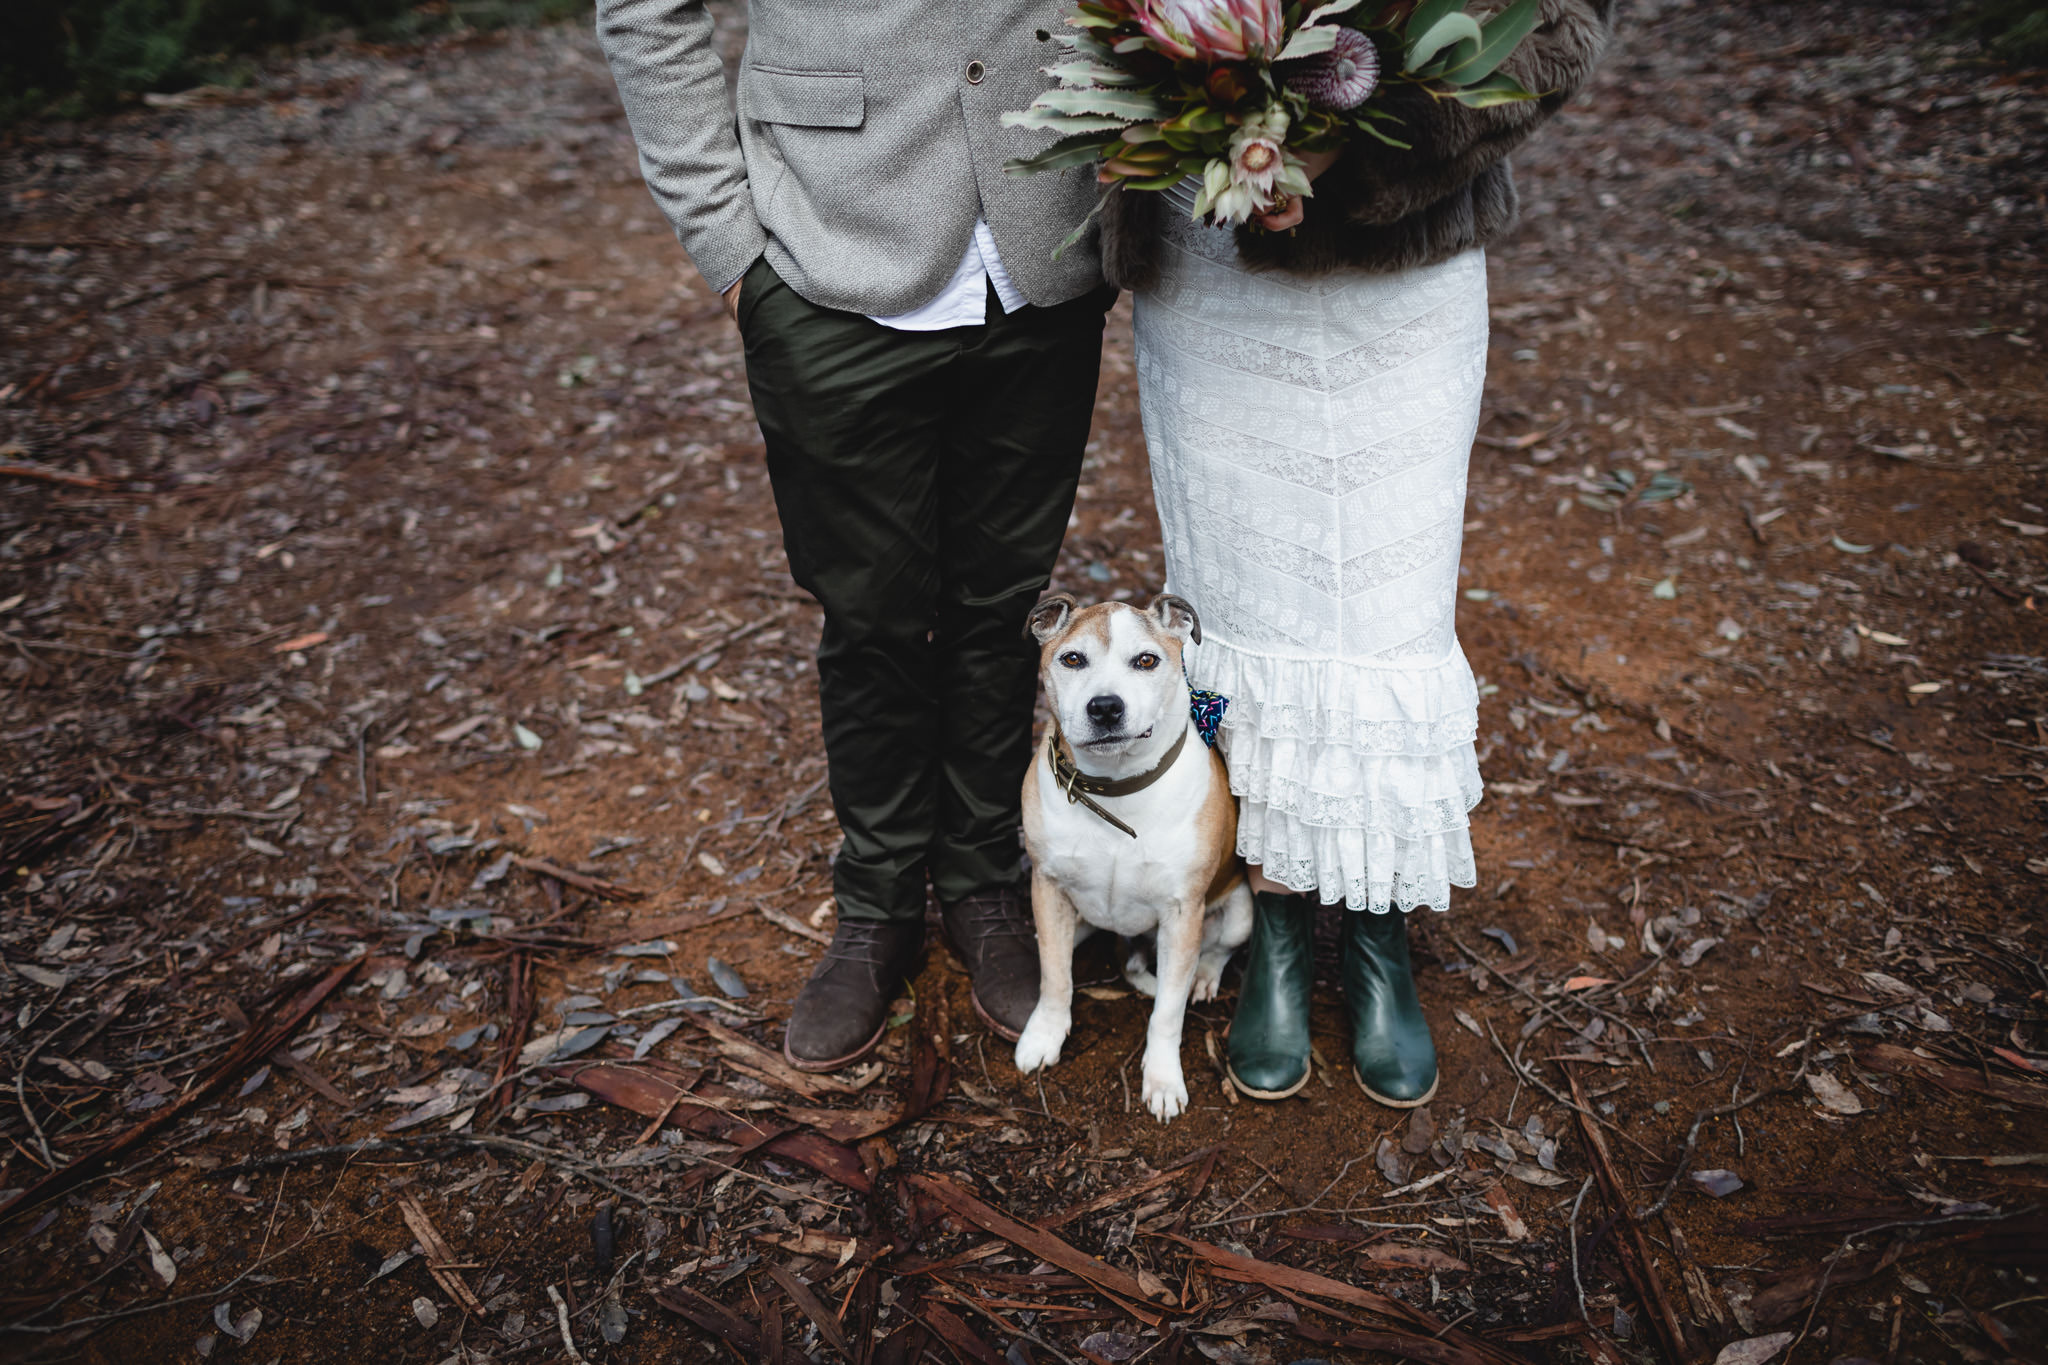 Old Staffordshire terrier dog standing between bride and groom at quirky forest elopement